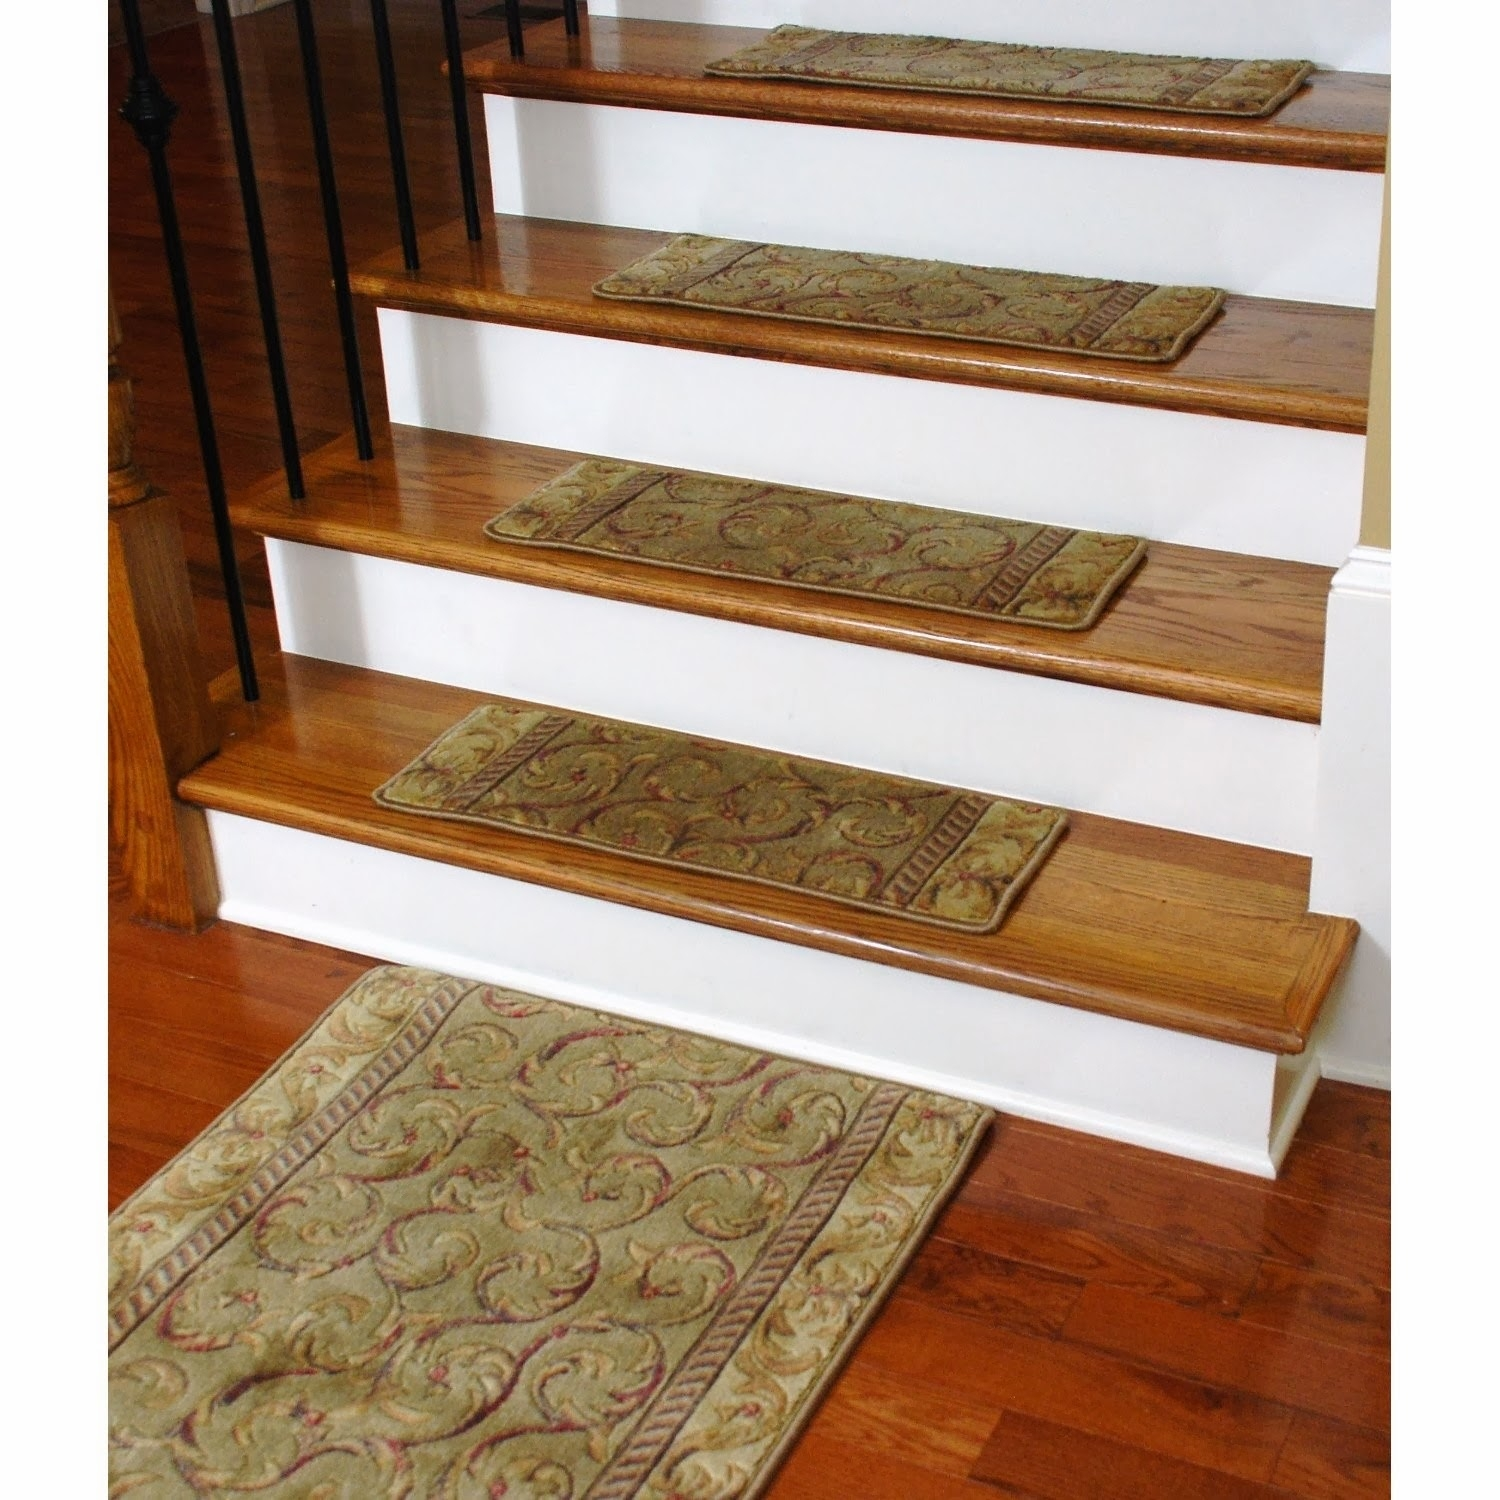 54 Stair Carpet Protectors Protective Non Skid Carpet Runner For Intended For Stair Tread Carpet Covers (Image 1 of 15)